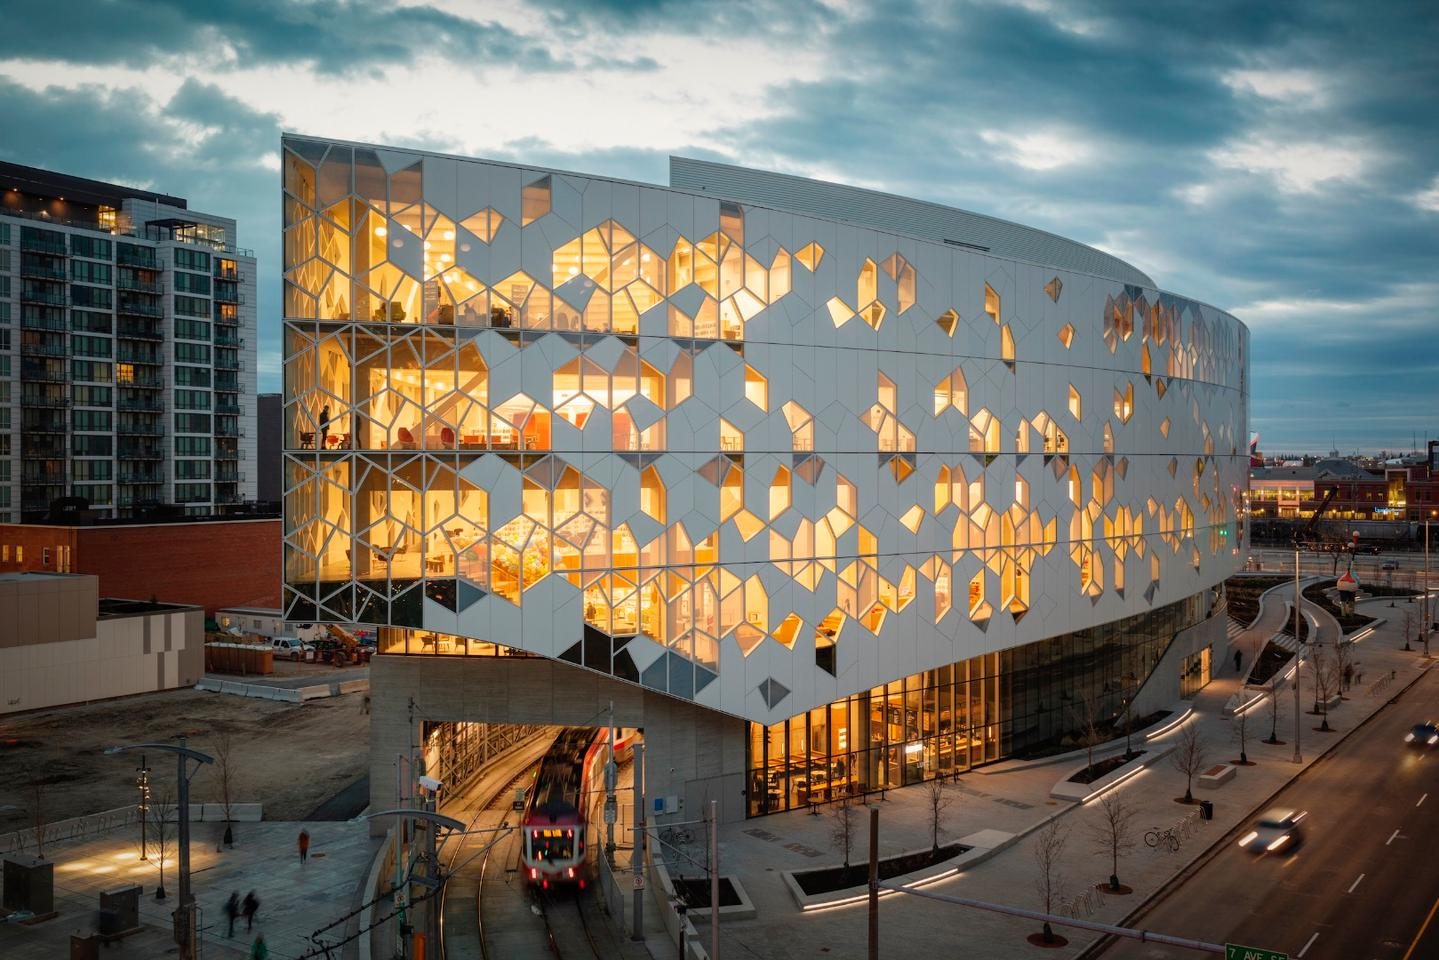 The total cost for Calgary Central Library came in at CAD 245 million (roughly US$187 million)